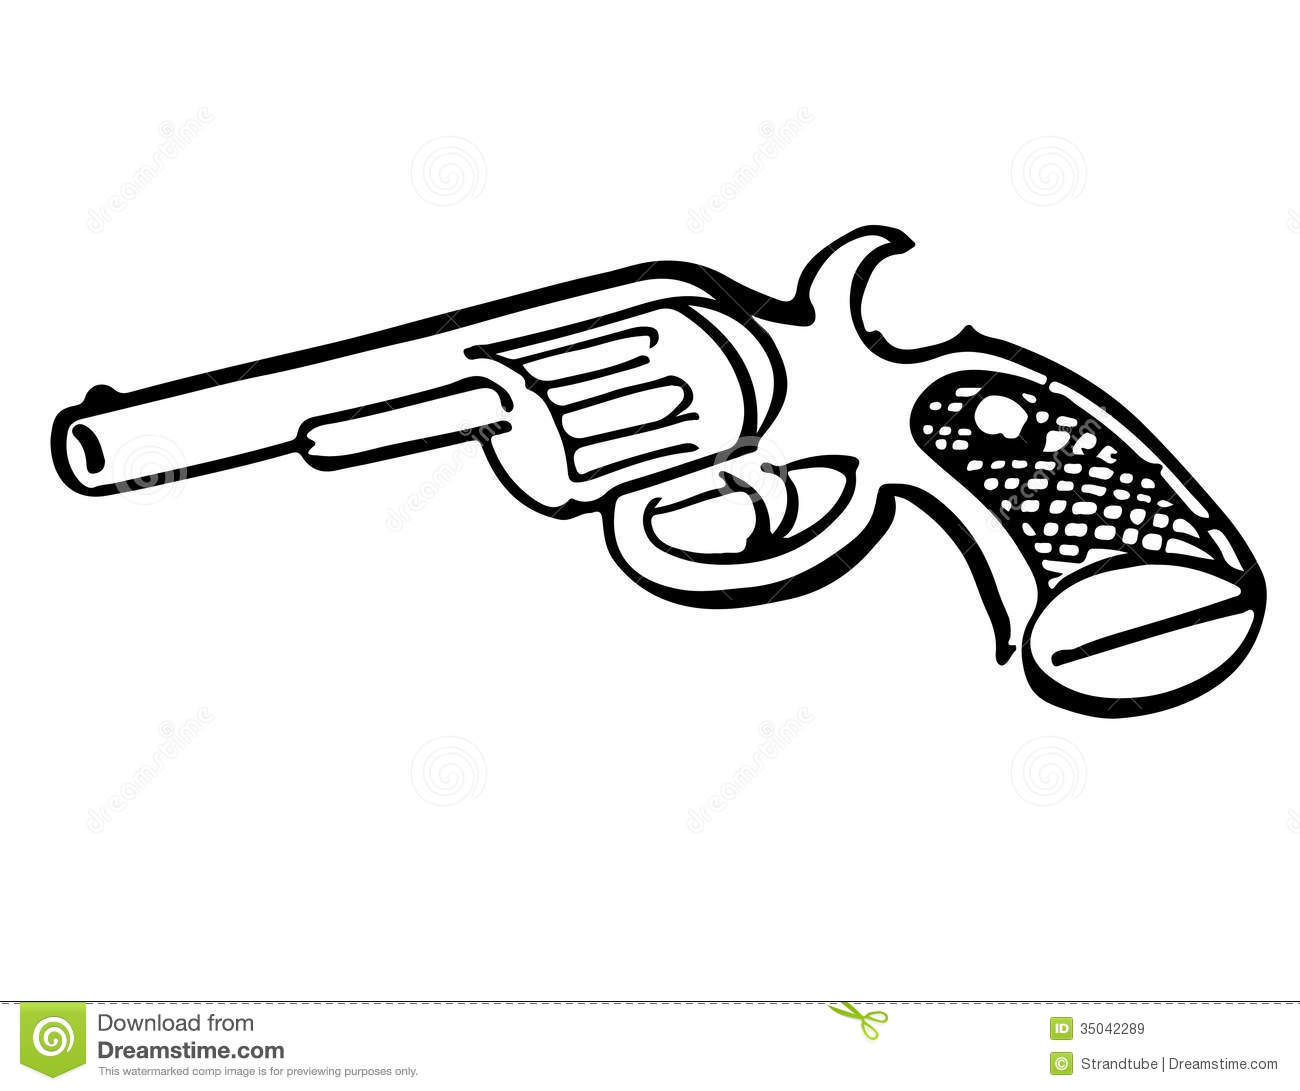 Royalty Free Stock Images Hand Drawn Toy Gun Image 35042289